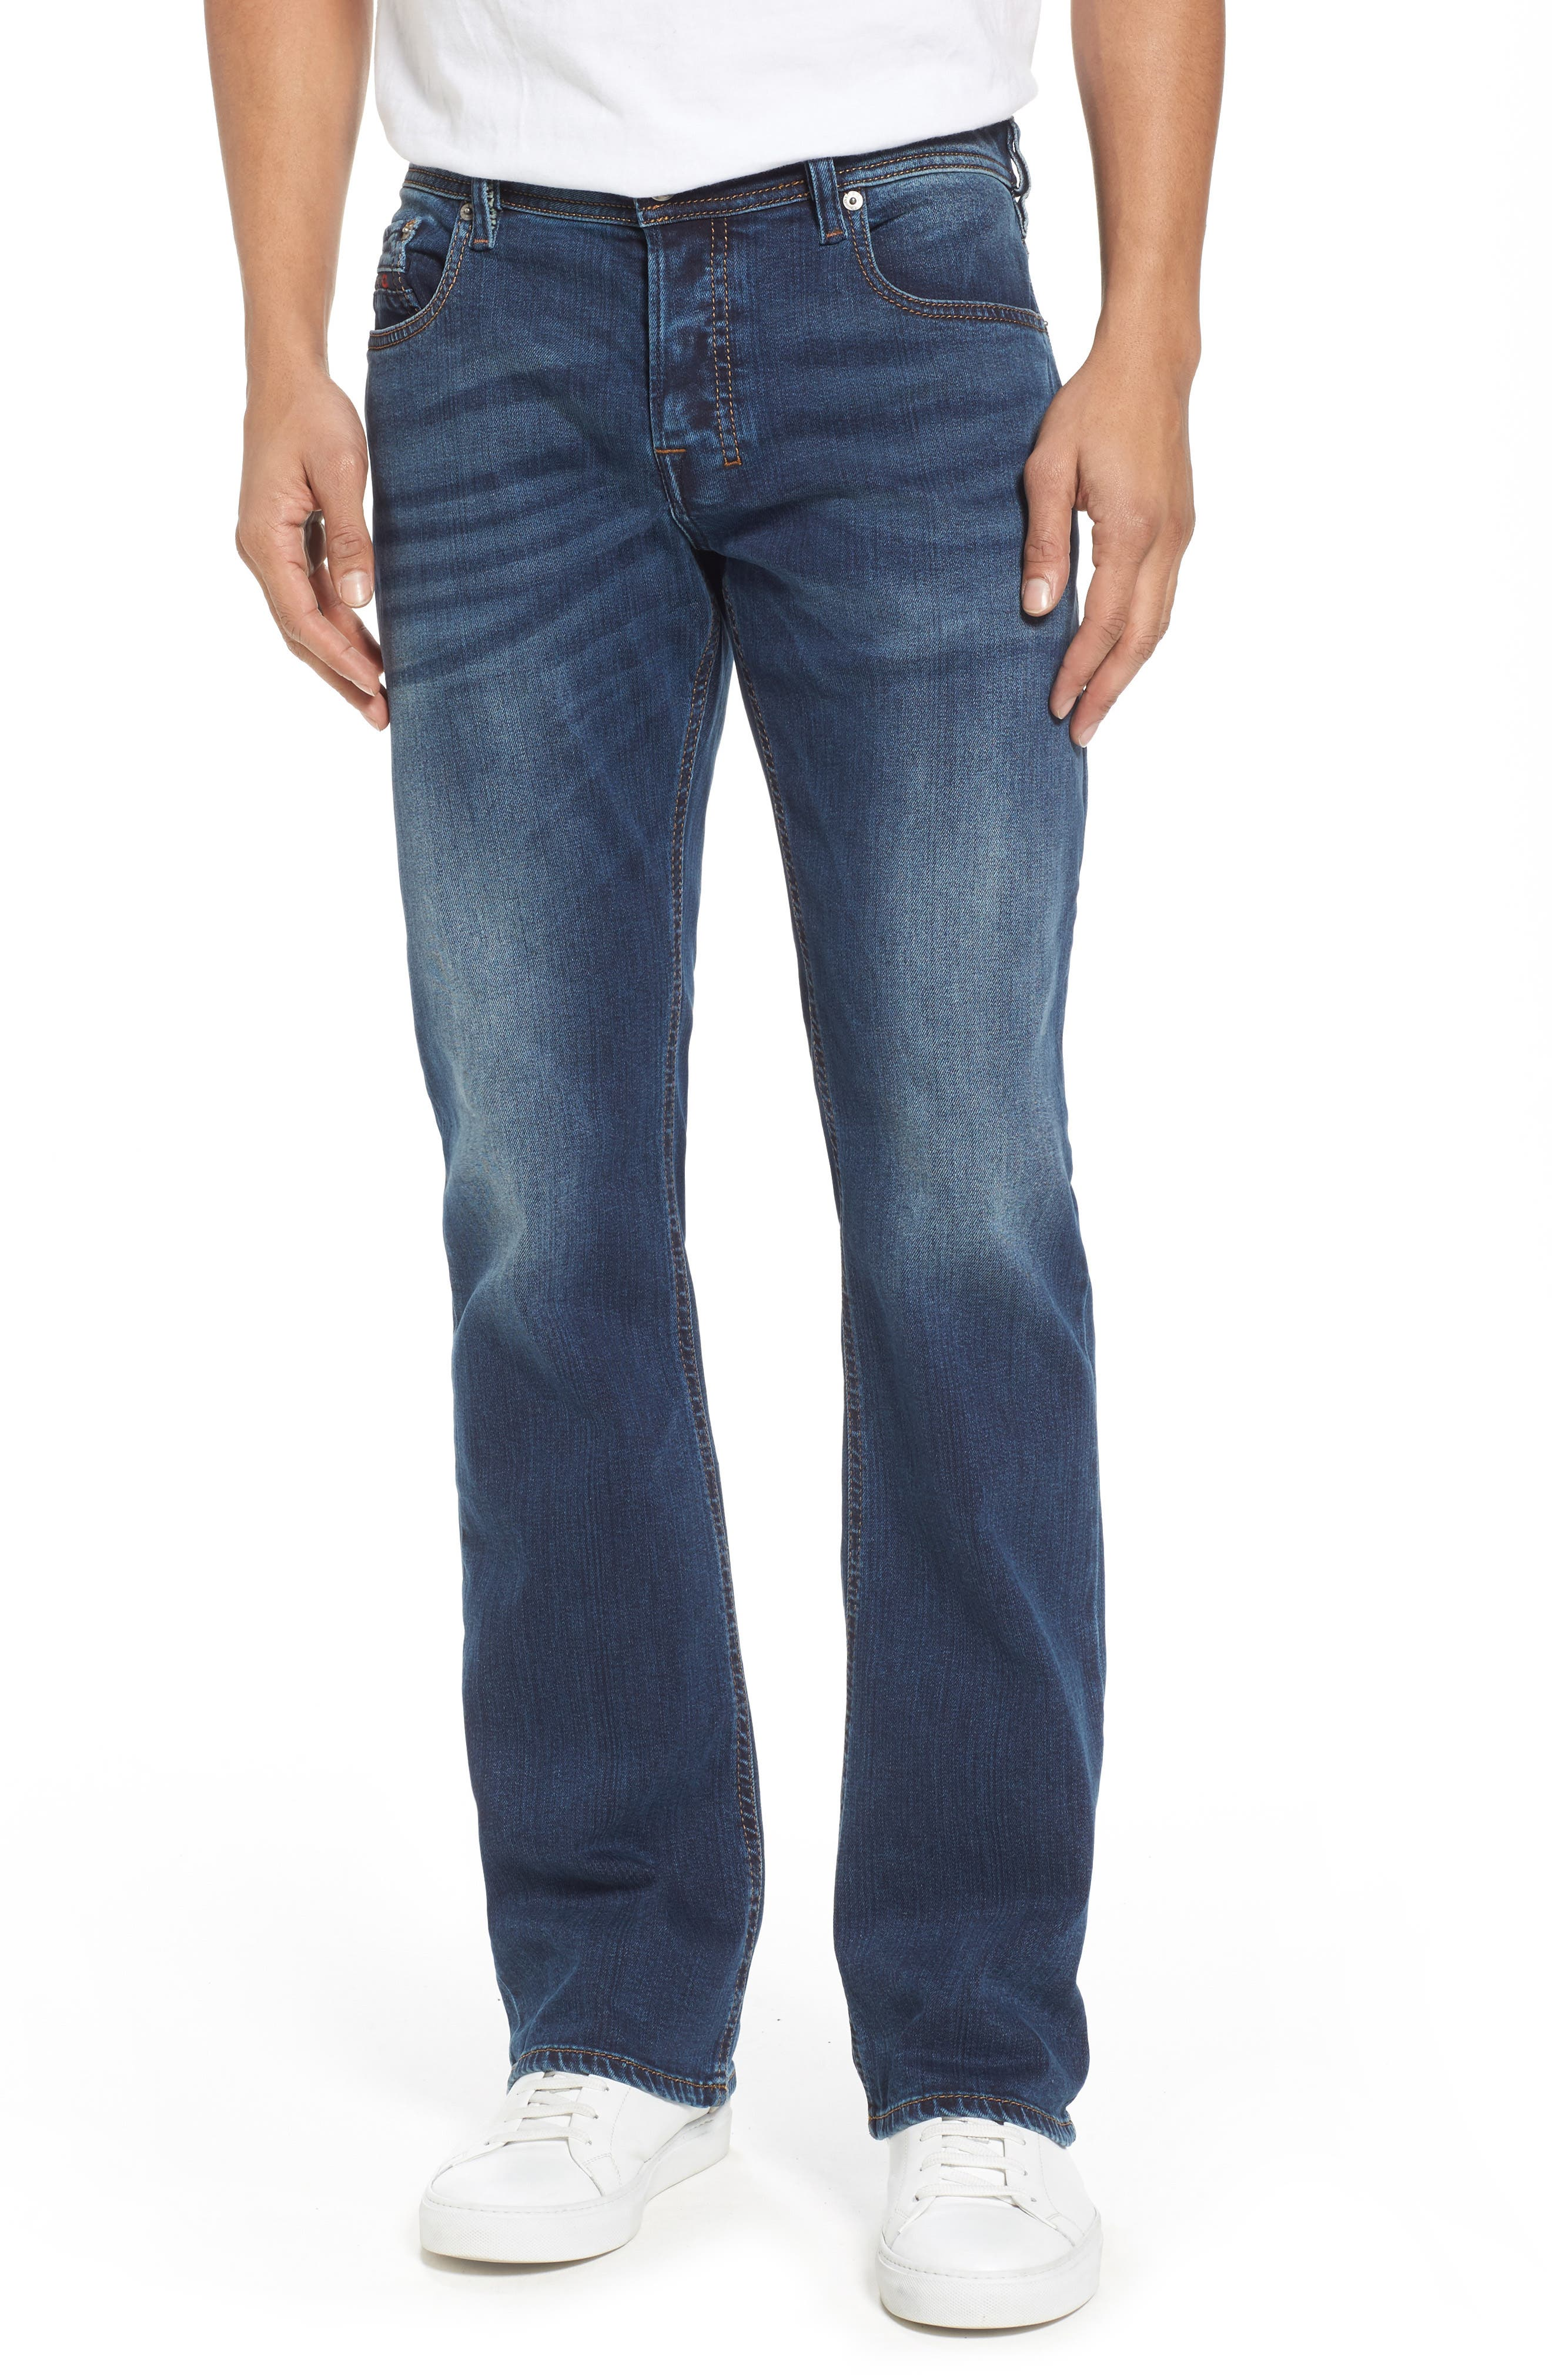 DIESEL<SUP>®</SUP>, Zatiny Bootcut Jeans, Main thumbnail 1, color, 084BU